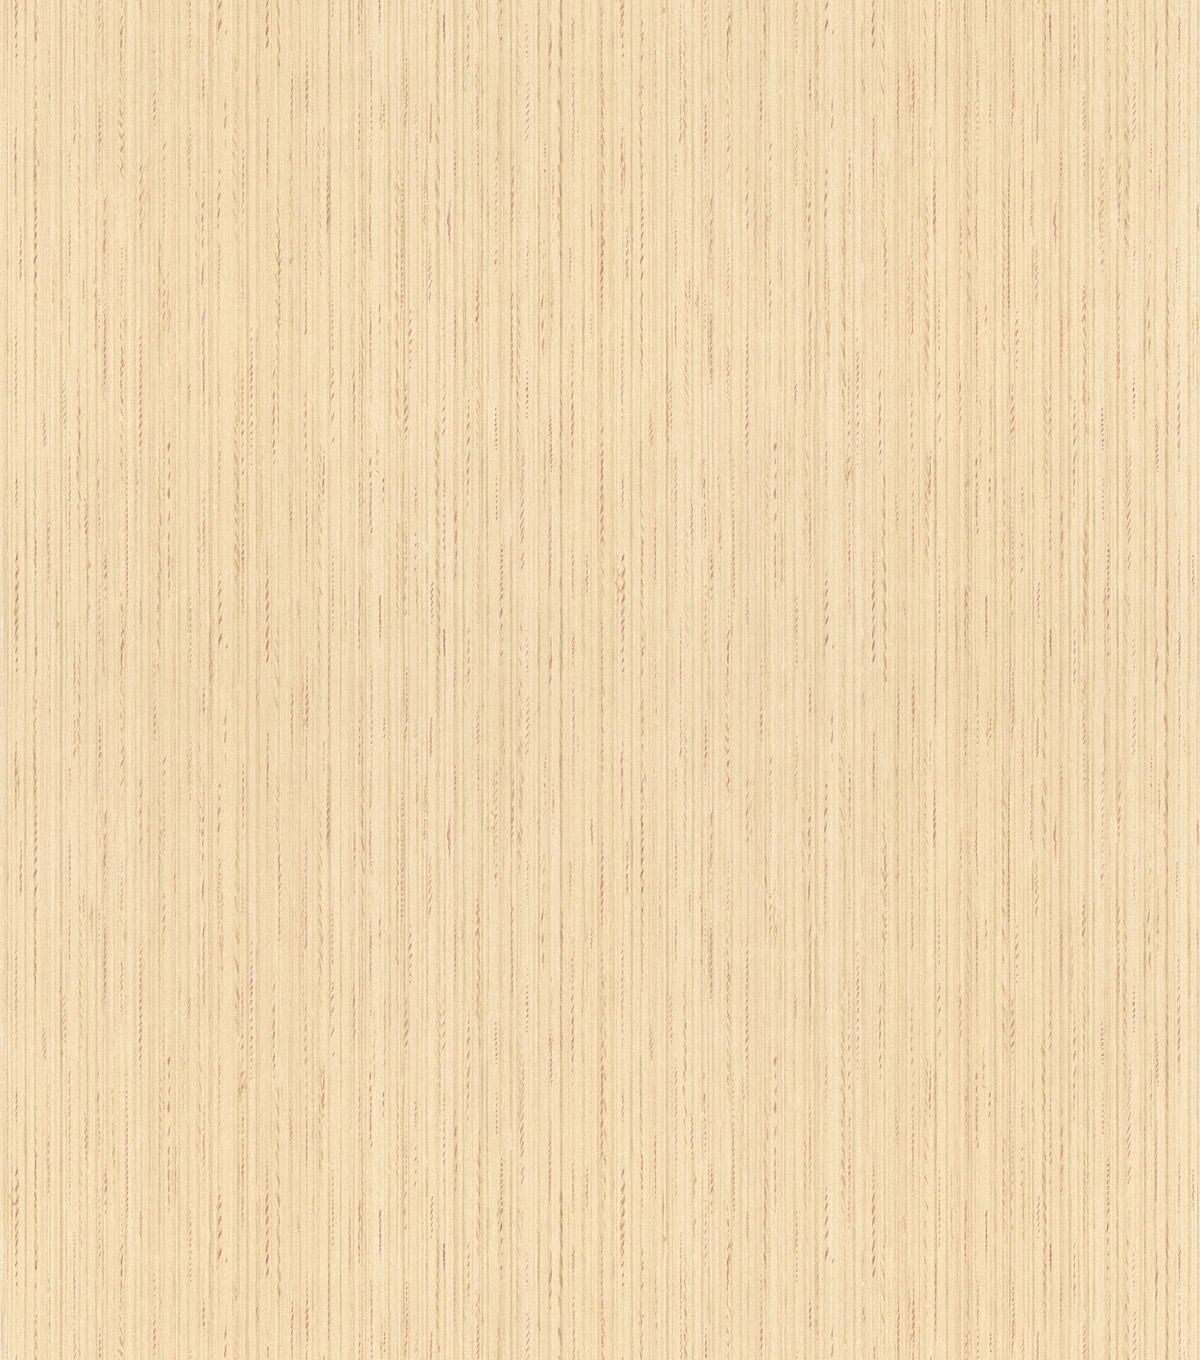 Dore Brass Striped Silk Texture Wallpaper Sample